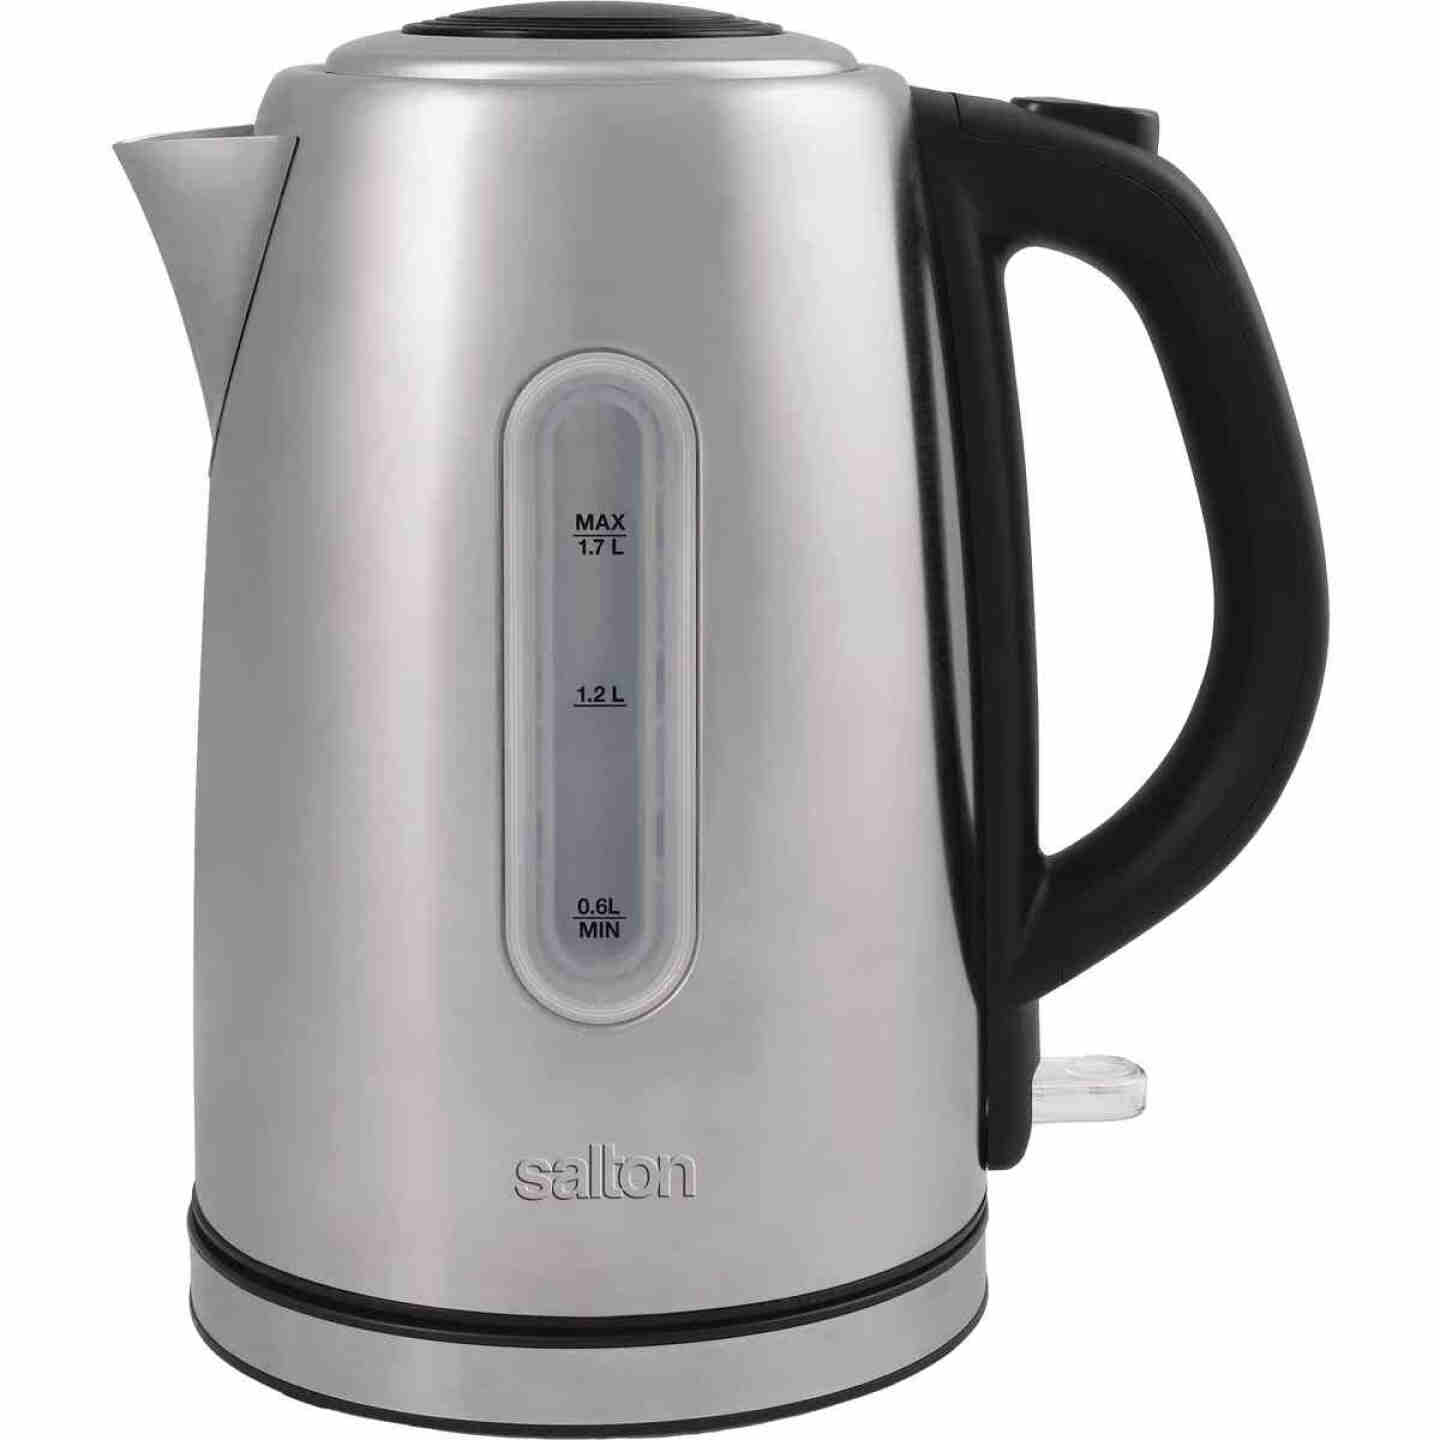 Salton 1.7 Ltr. Cordless Electric Stainless Steel Kettle Image 1